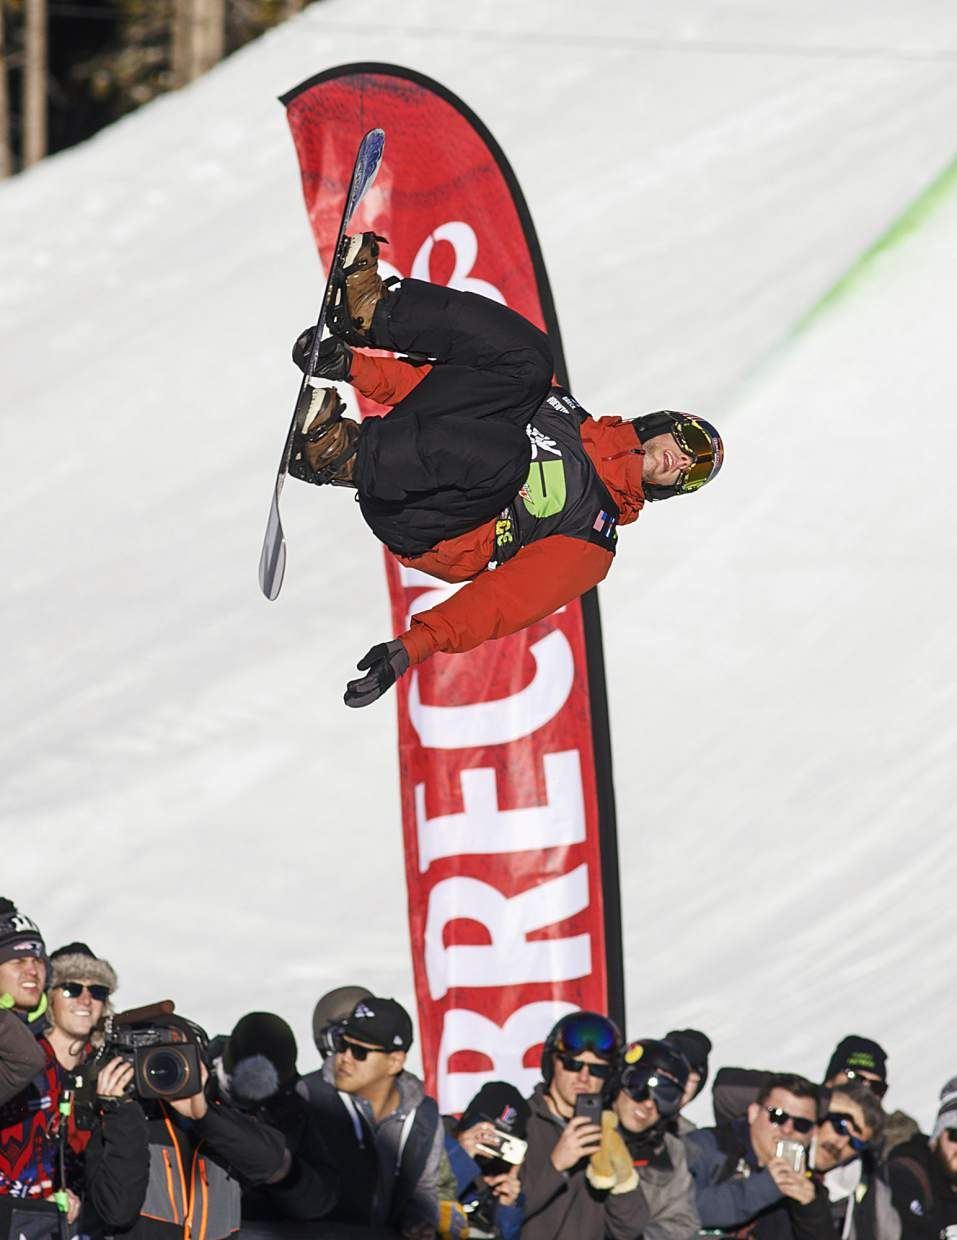 Ben Ferguson of United States competes in the superpipe finals during the Dew Tour event Friday, Dec. 15, at Breckenridge Ski Resort.